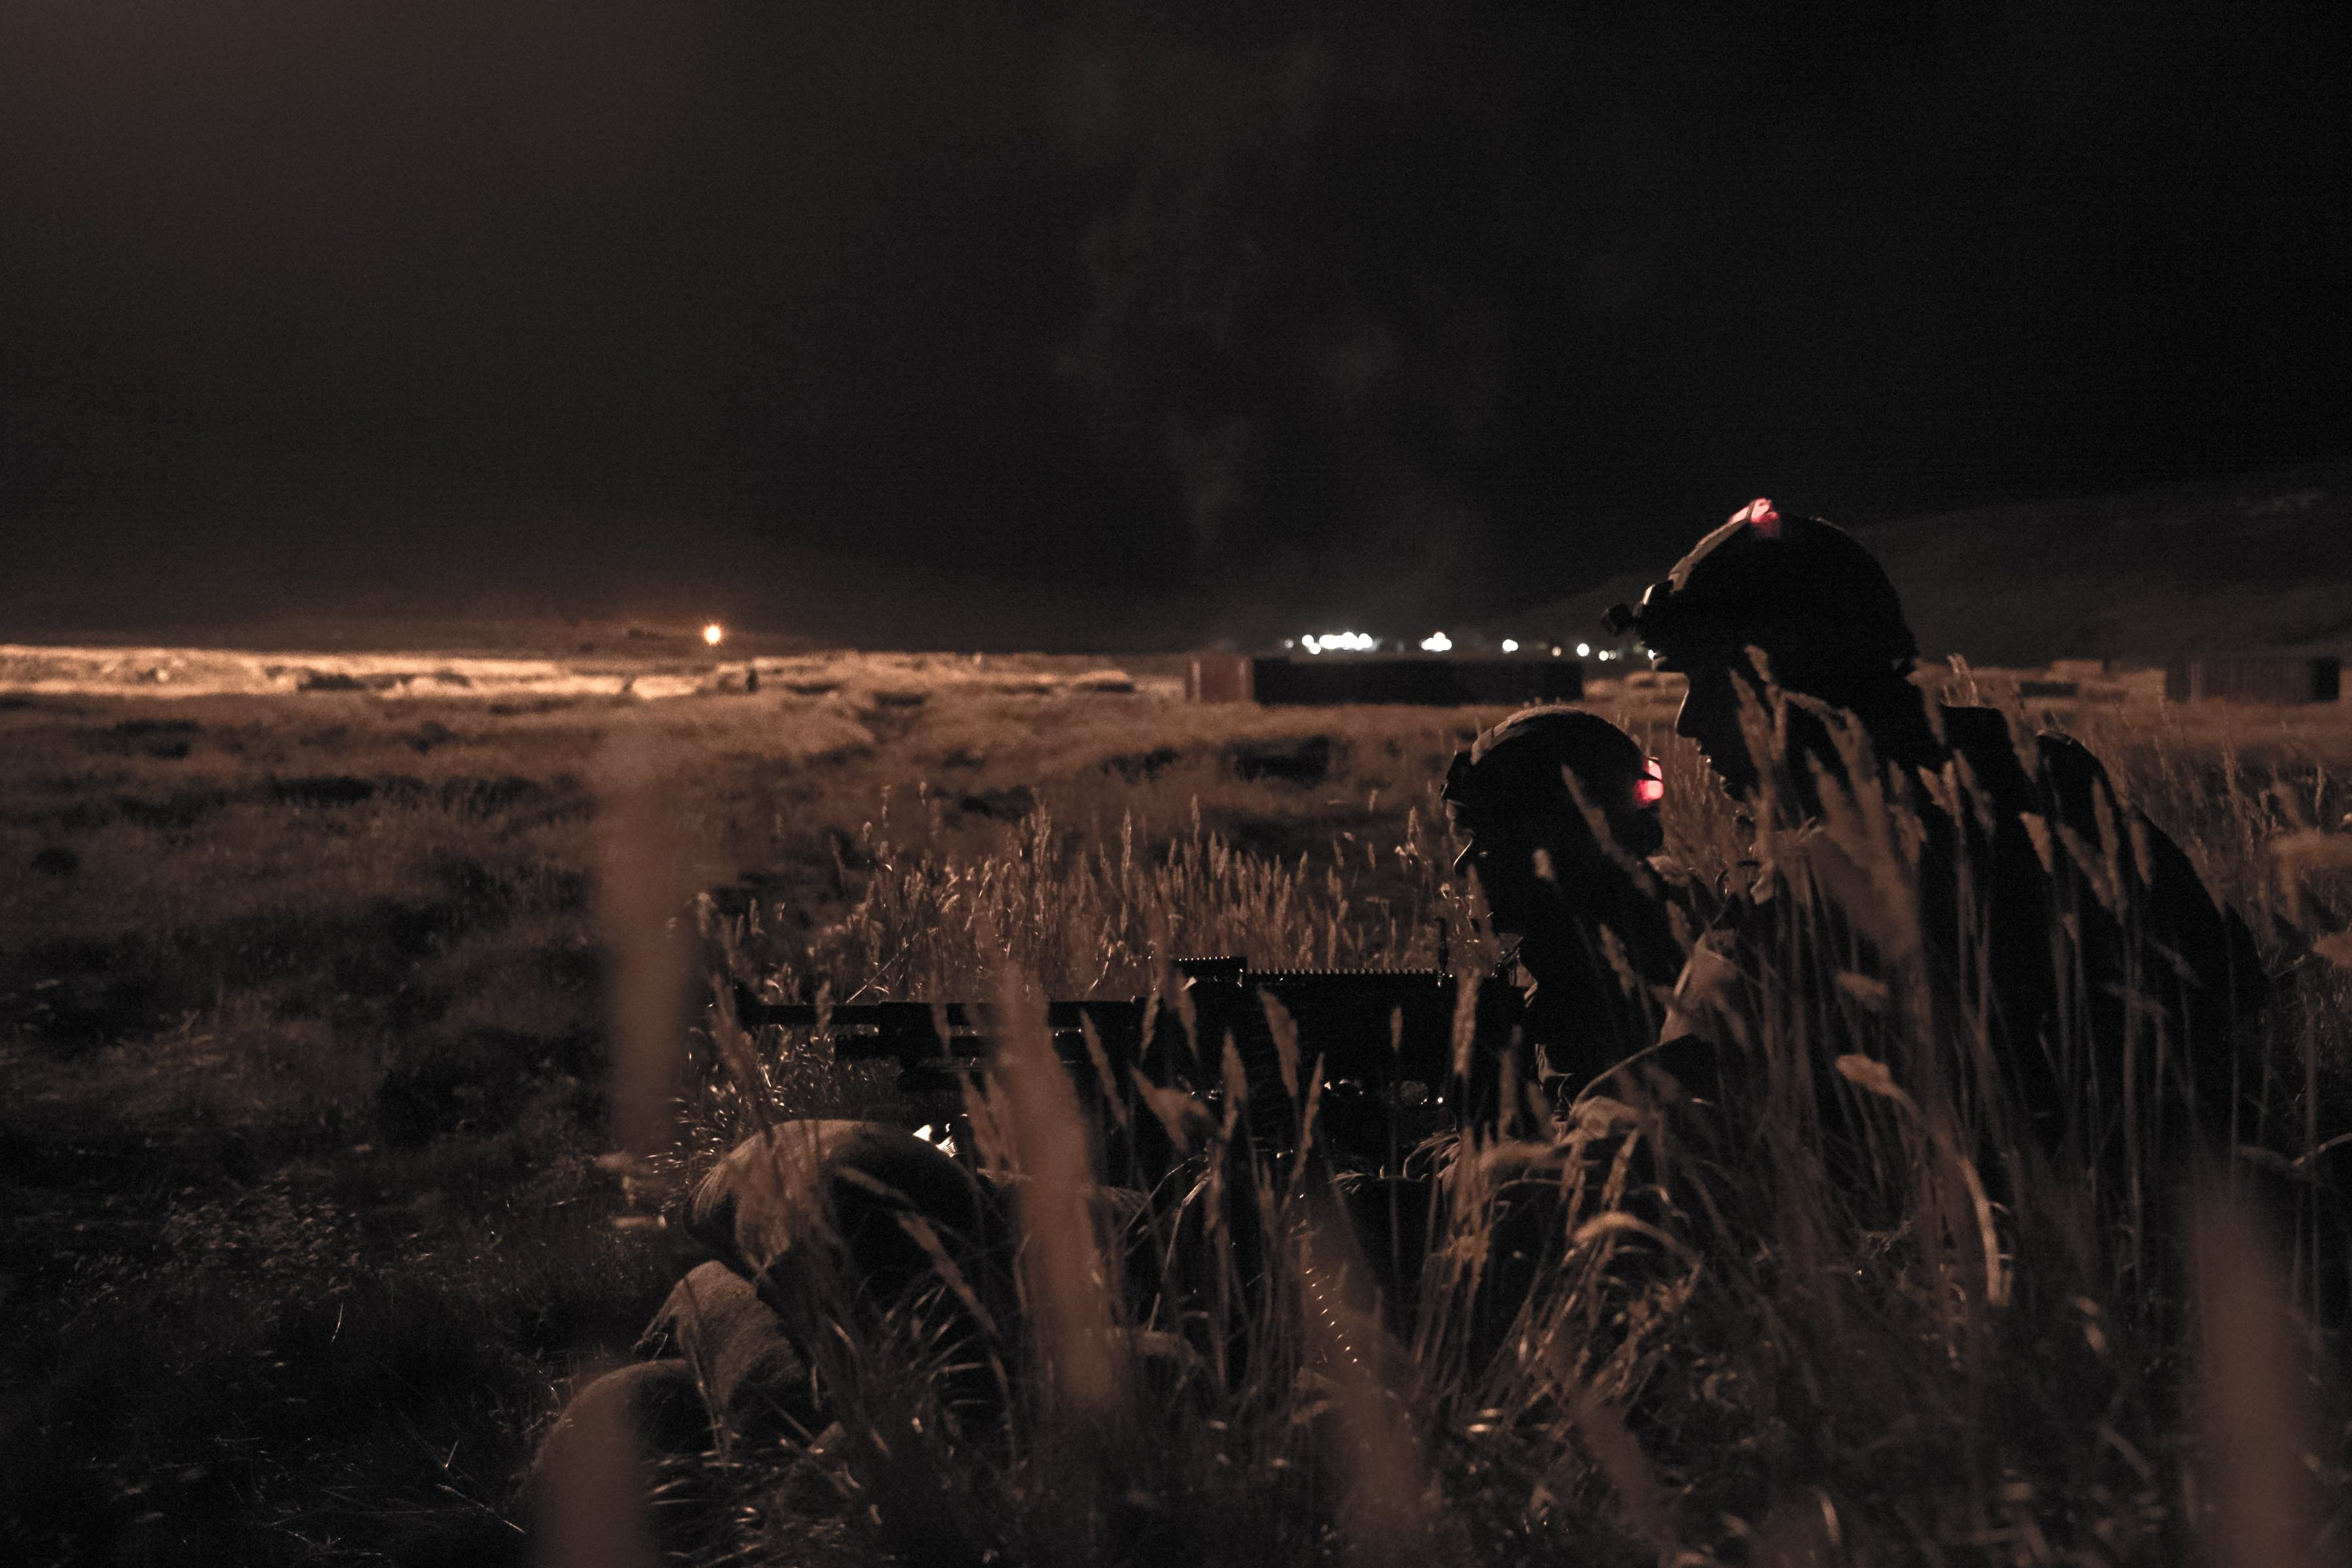 4 Scots conduct night time training on the Falkland Islands